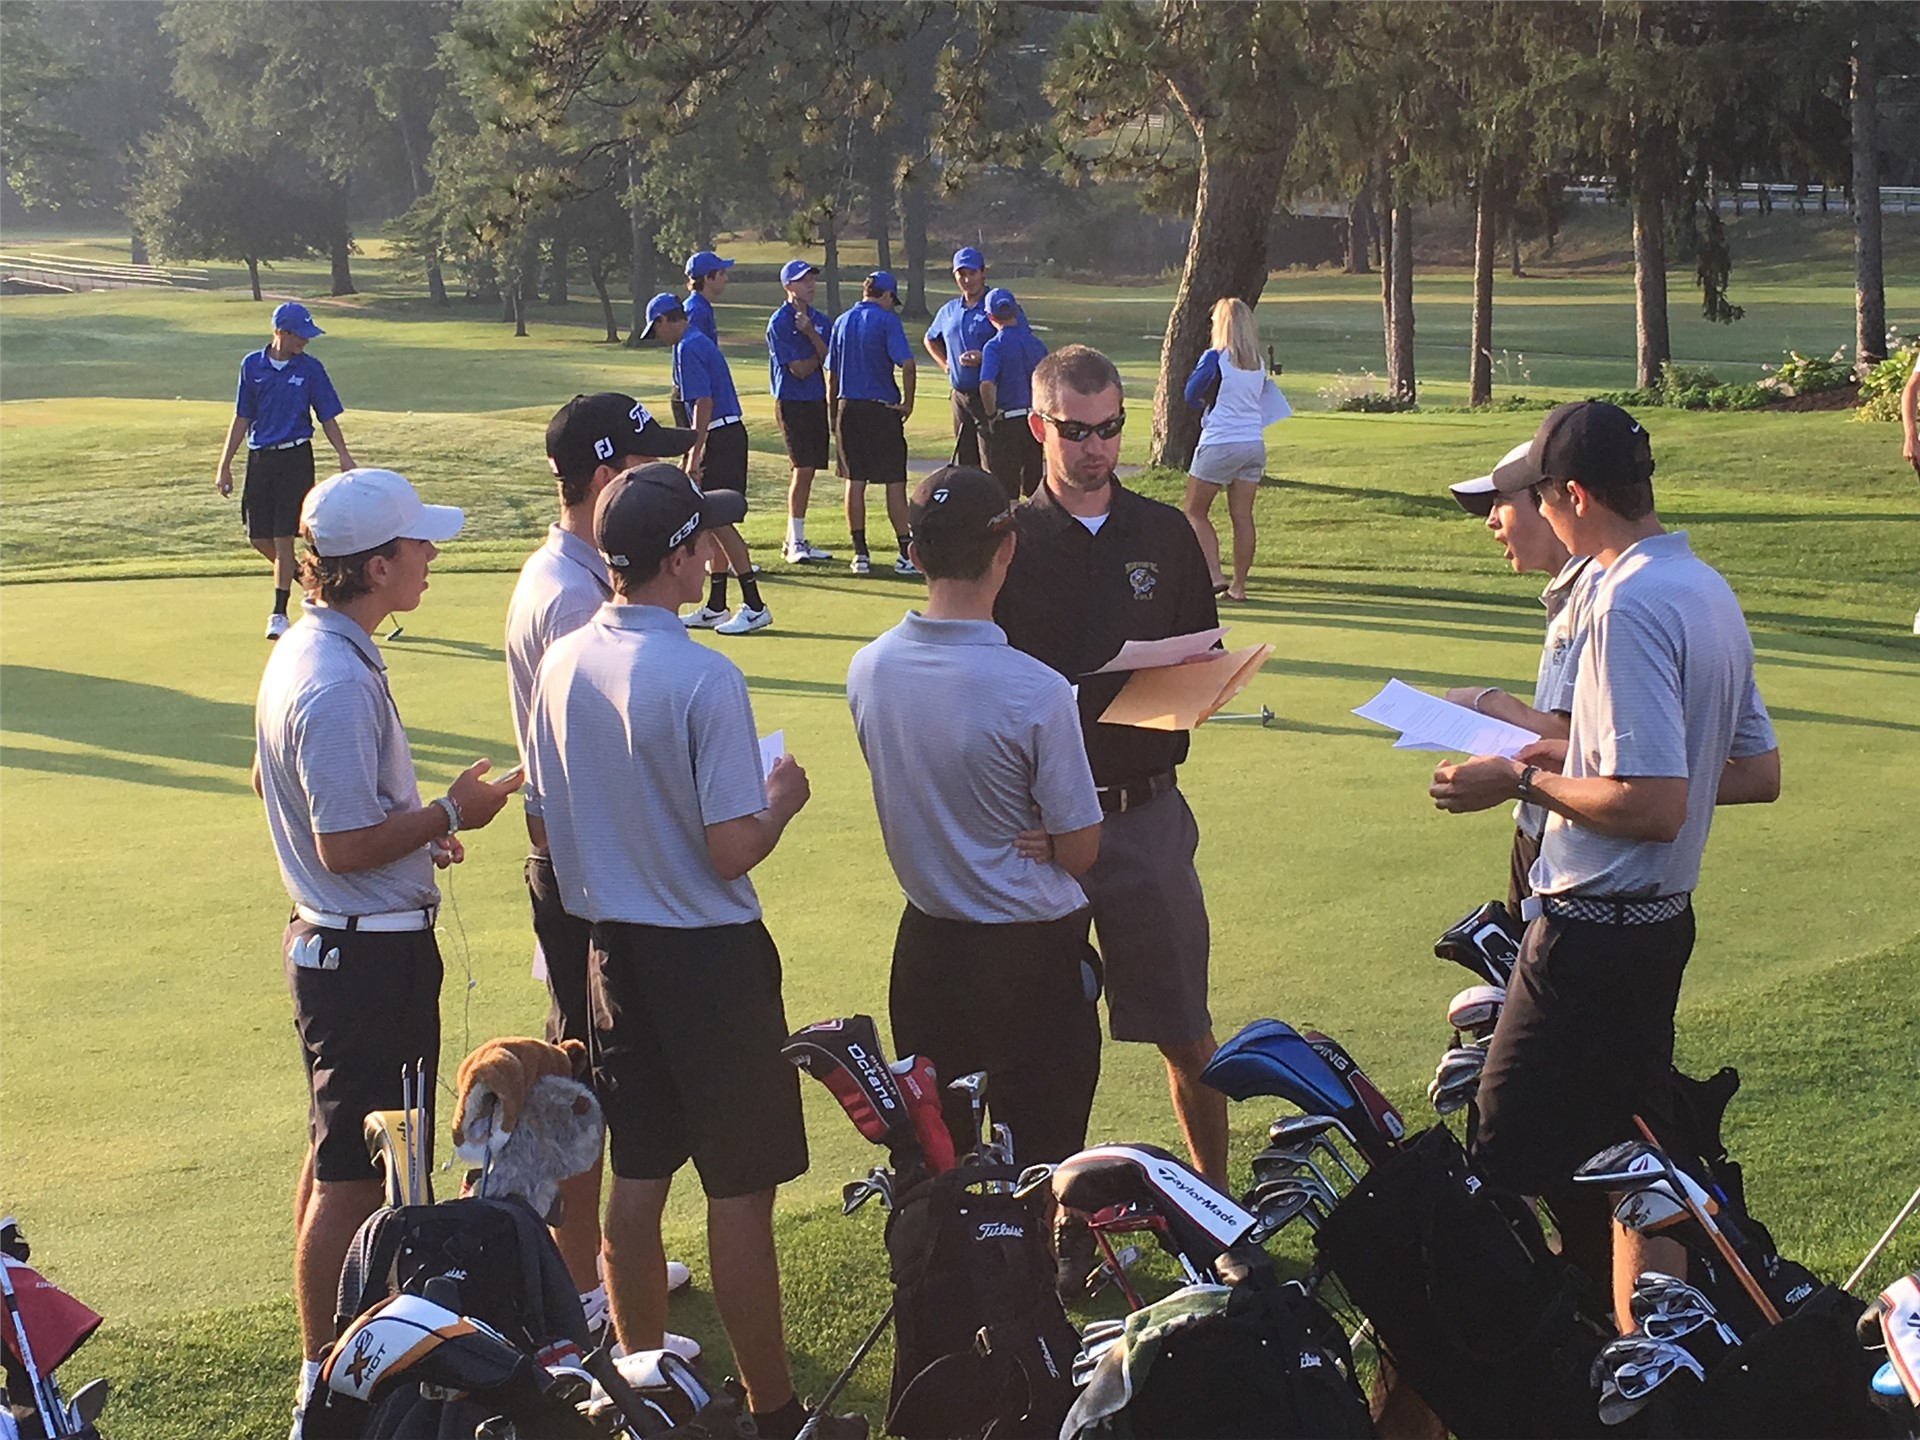 PHS boys golf team listening to coach before the match